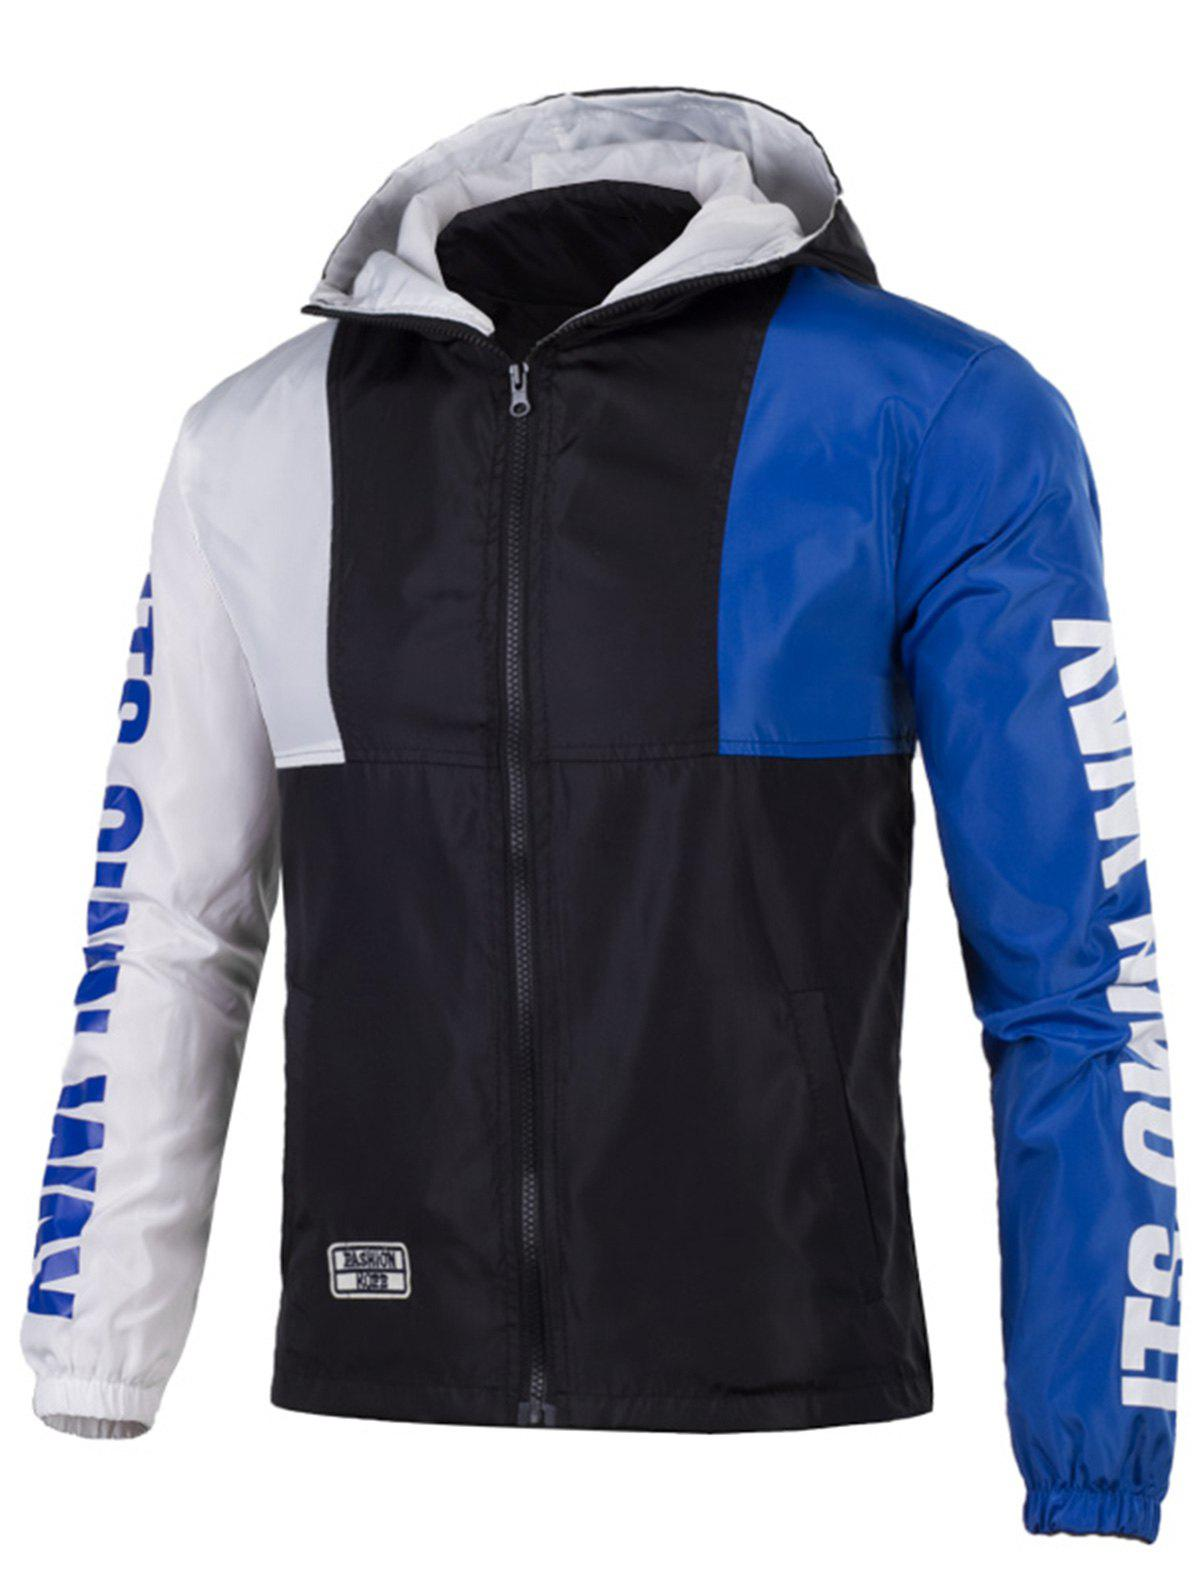 New Color Block Graphic Zip Up Lightweight Jacket